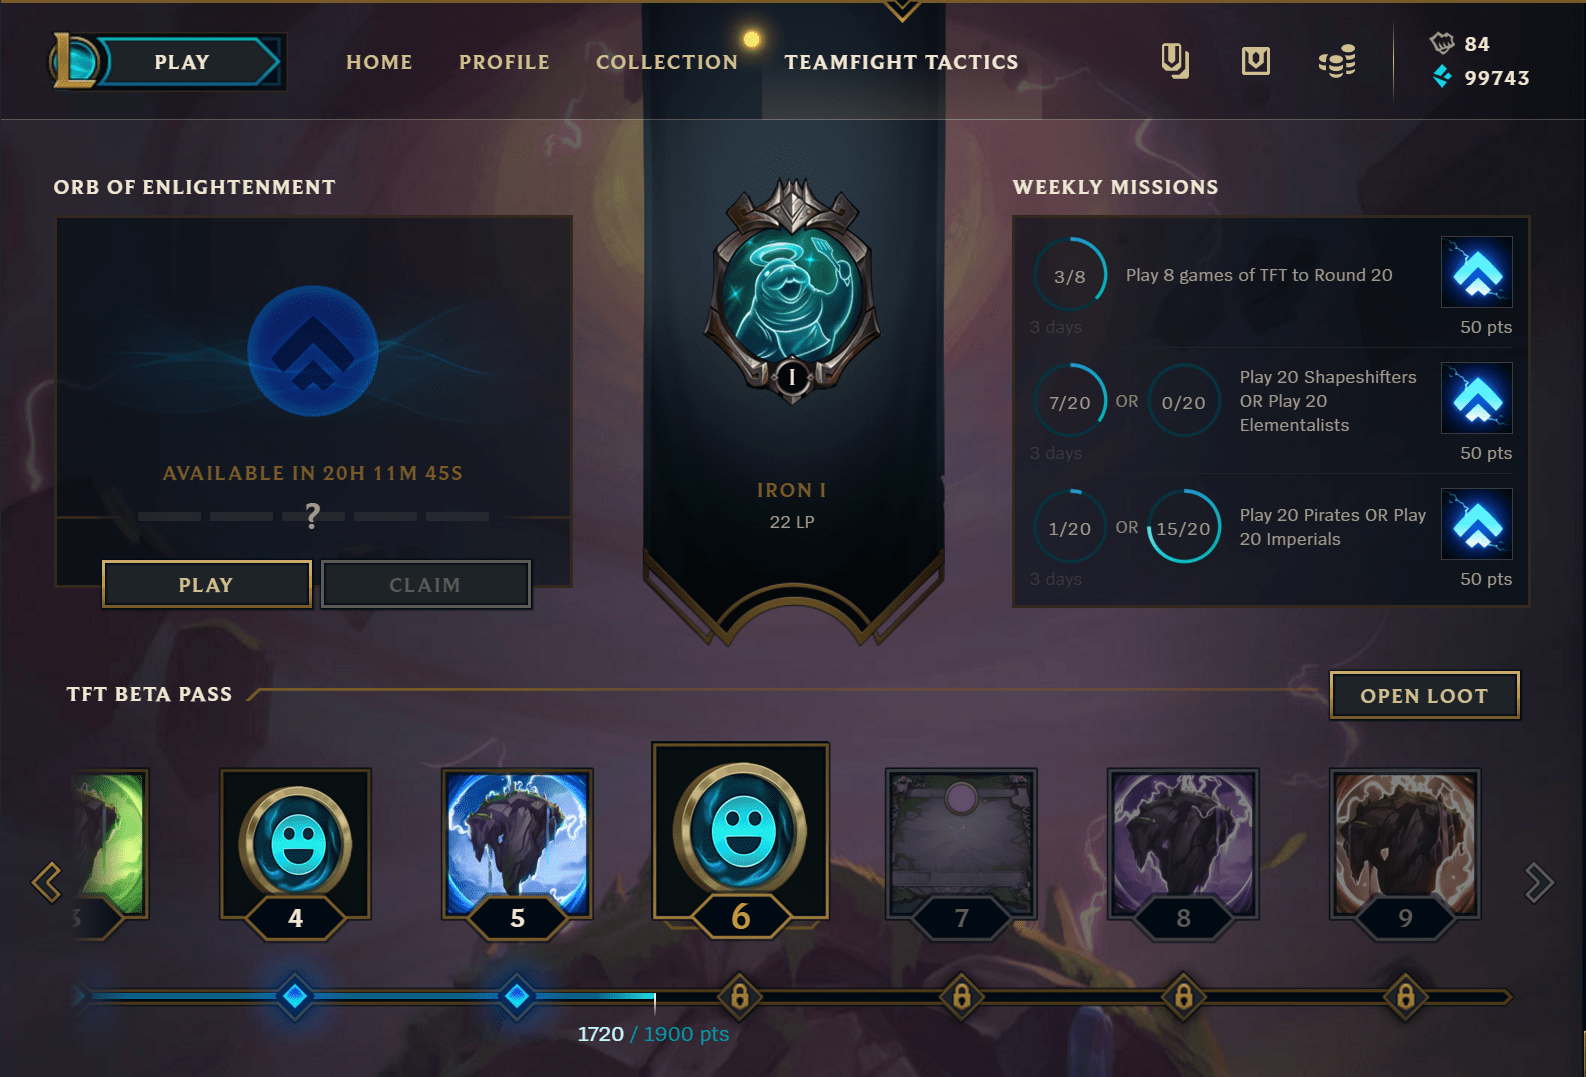 Last Chance To Complete First Chapter Of Teamfight Tactics Beta Pass, Second Chapter Coming Soon